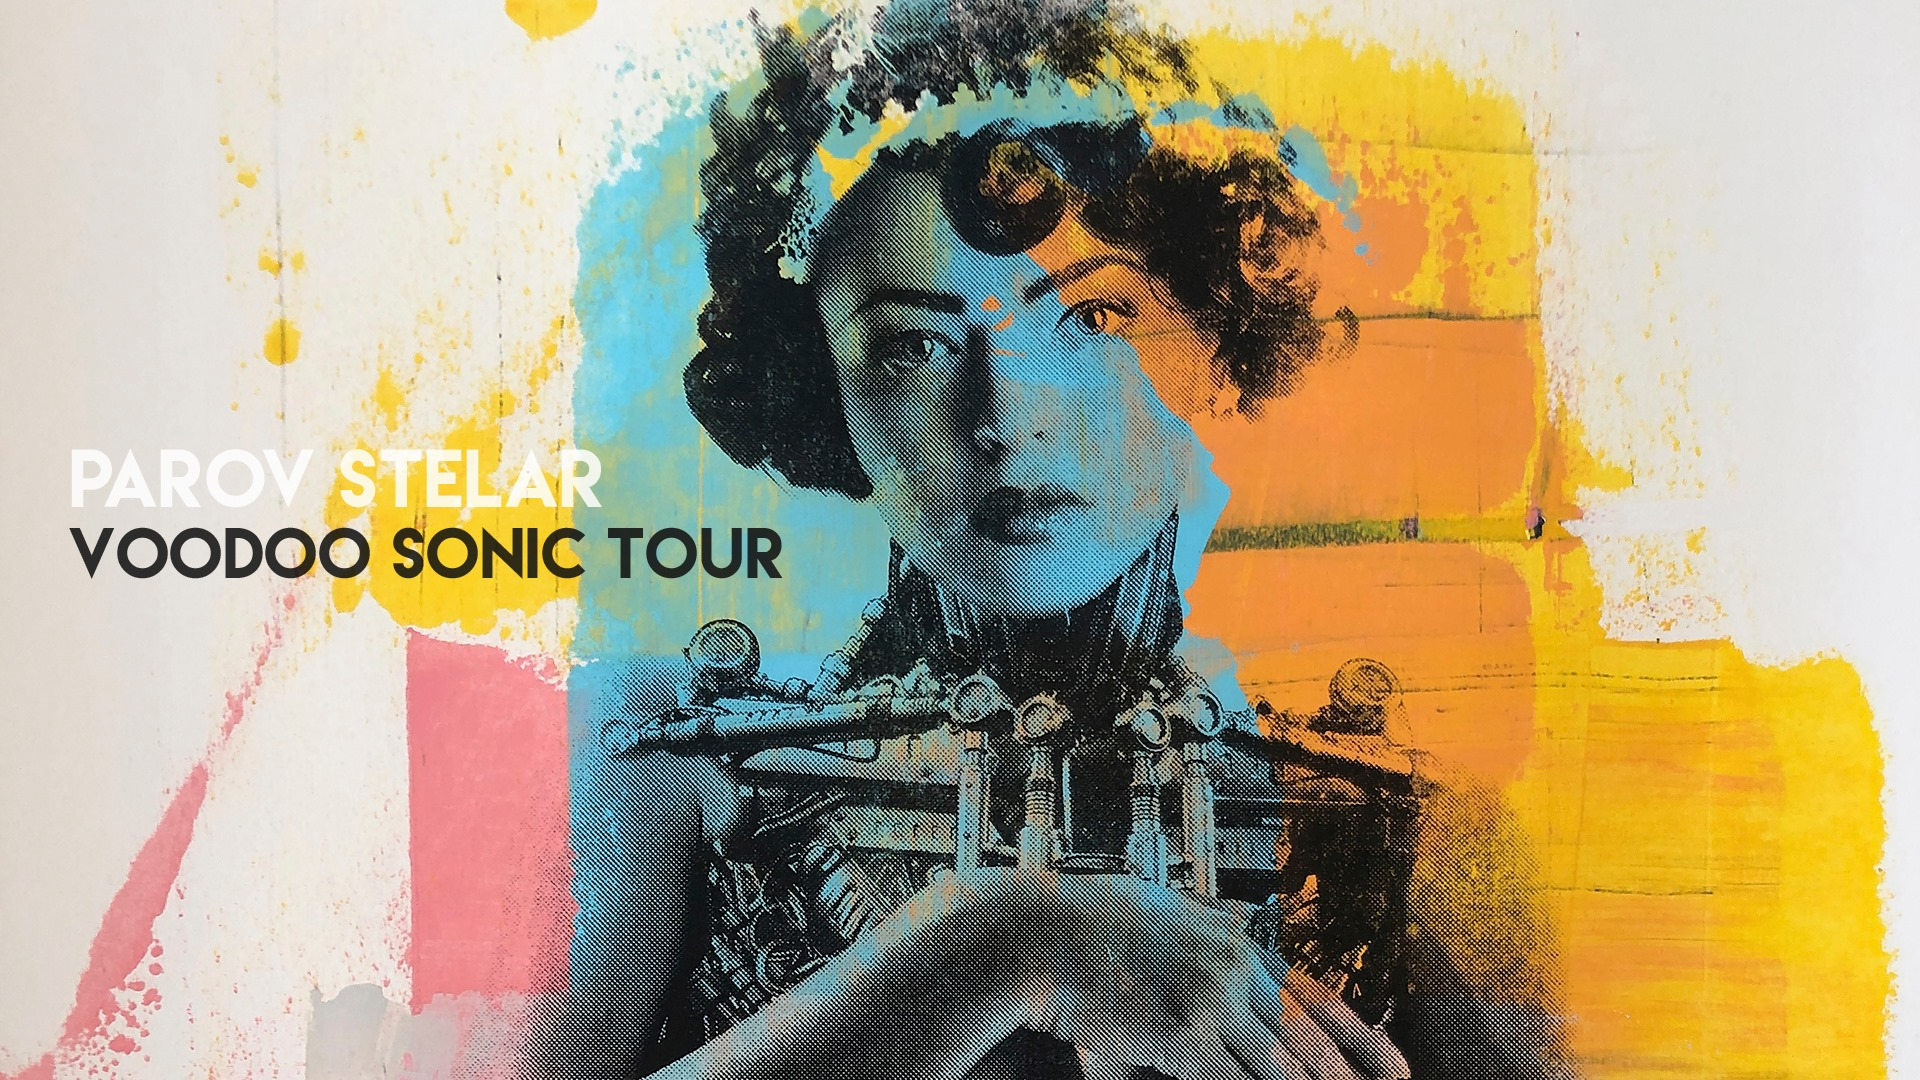 Parov Stelar am 20. September 2020 @ Konzerthaus Wien.